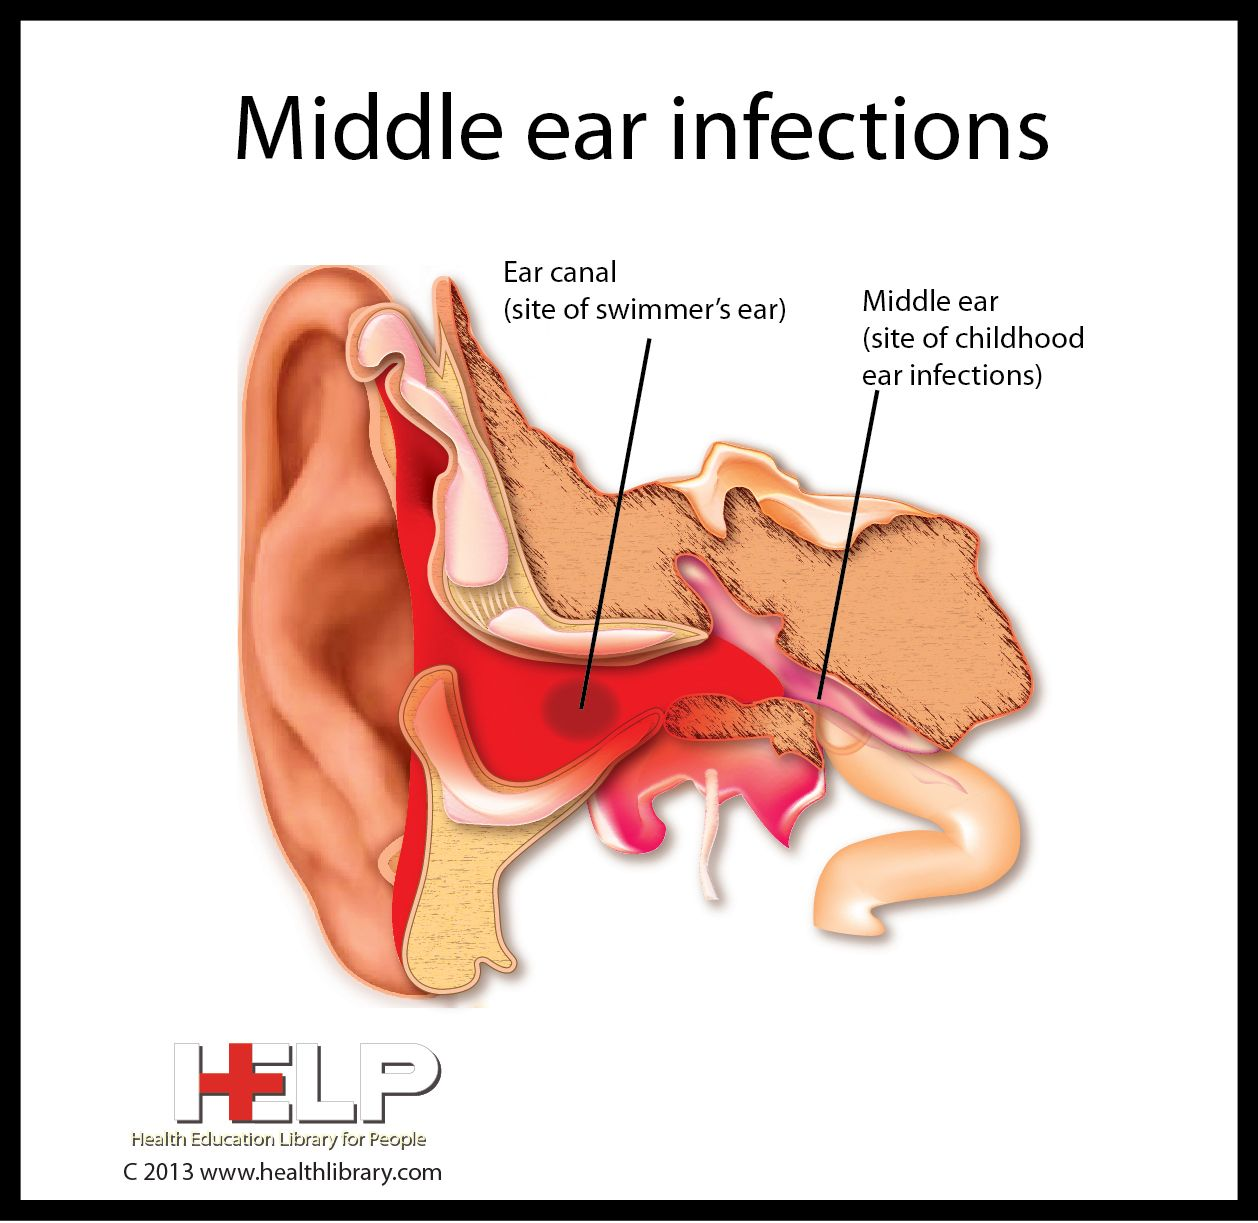 middle ear infections middle ear human body systems ear infection health education  [ 1258 x 1223 Pixel ]